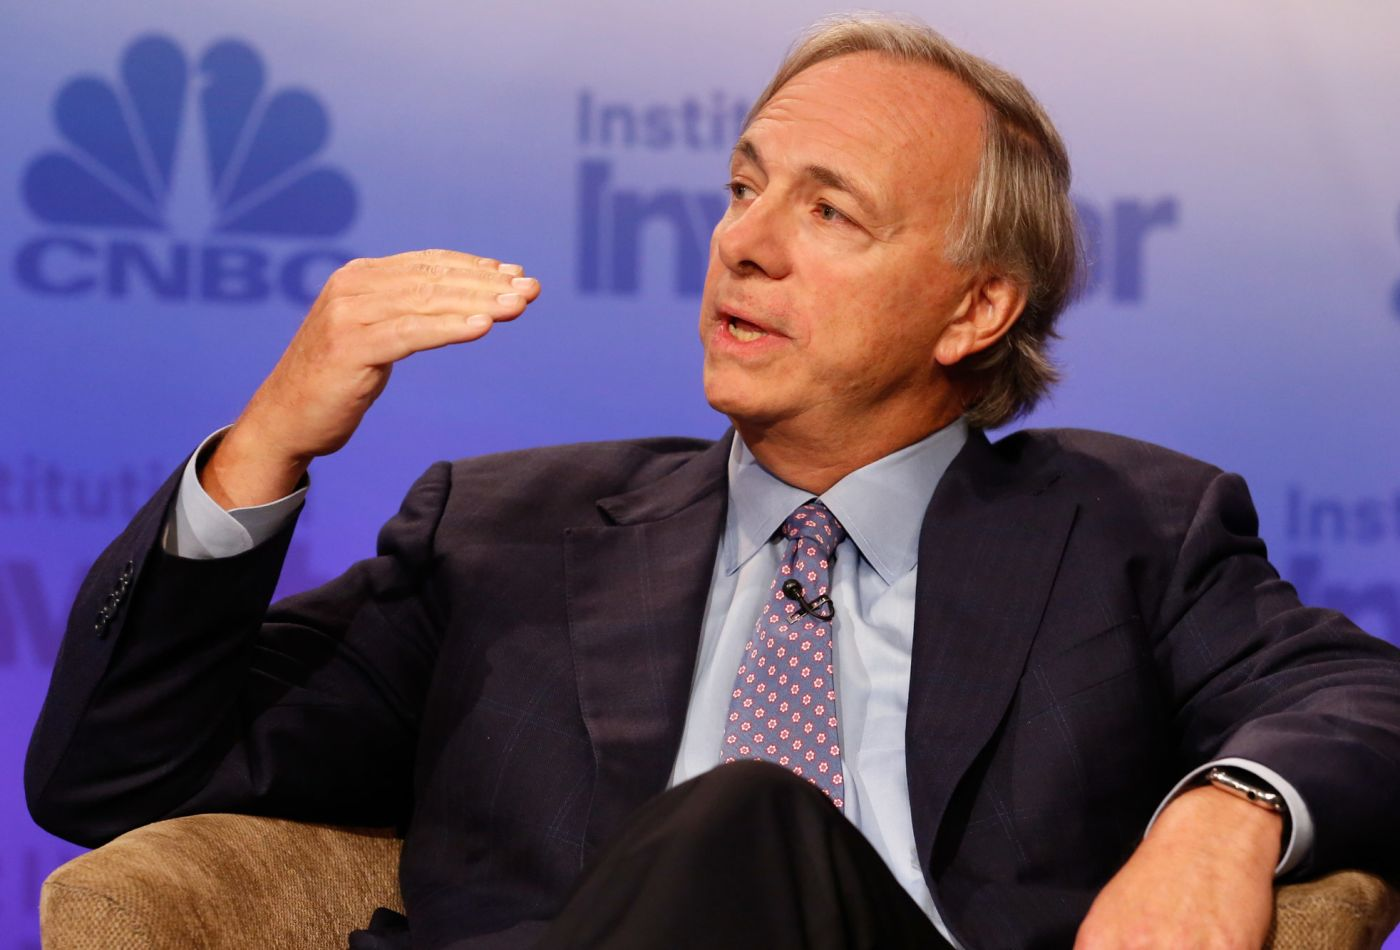 https://www.zerohedge.com/news/2019-08-16/founder-worlds-largest-hedge-fund-sees-40-recession-2020-election